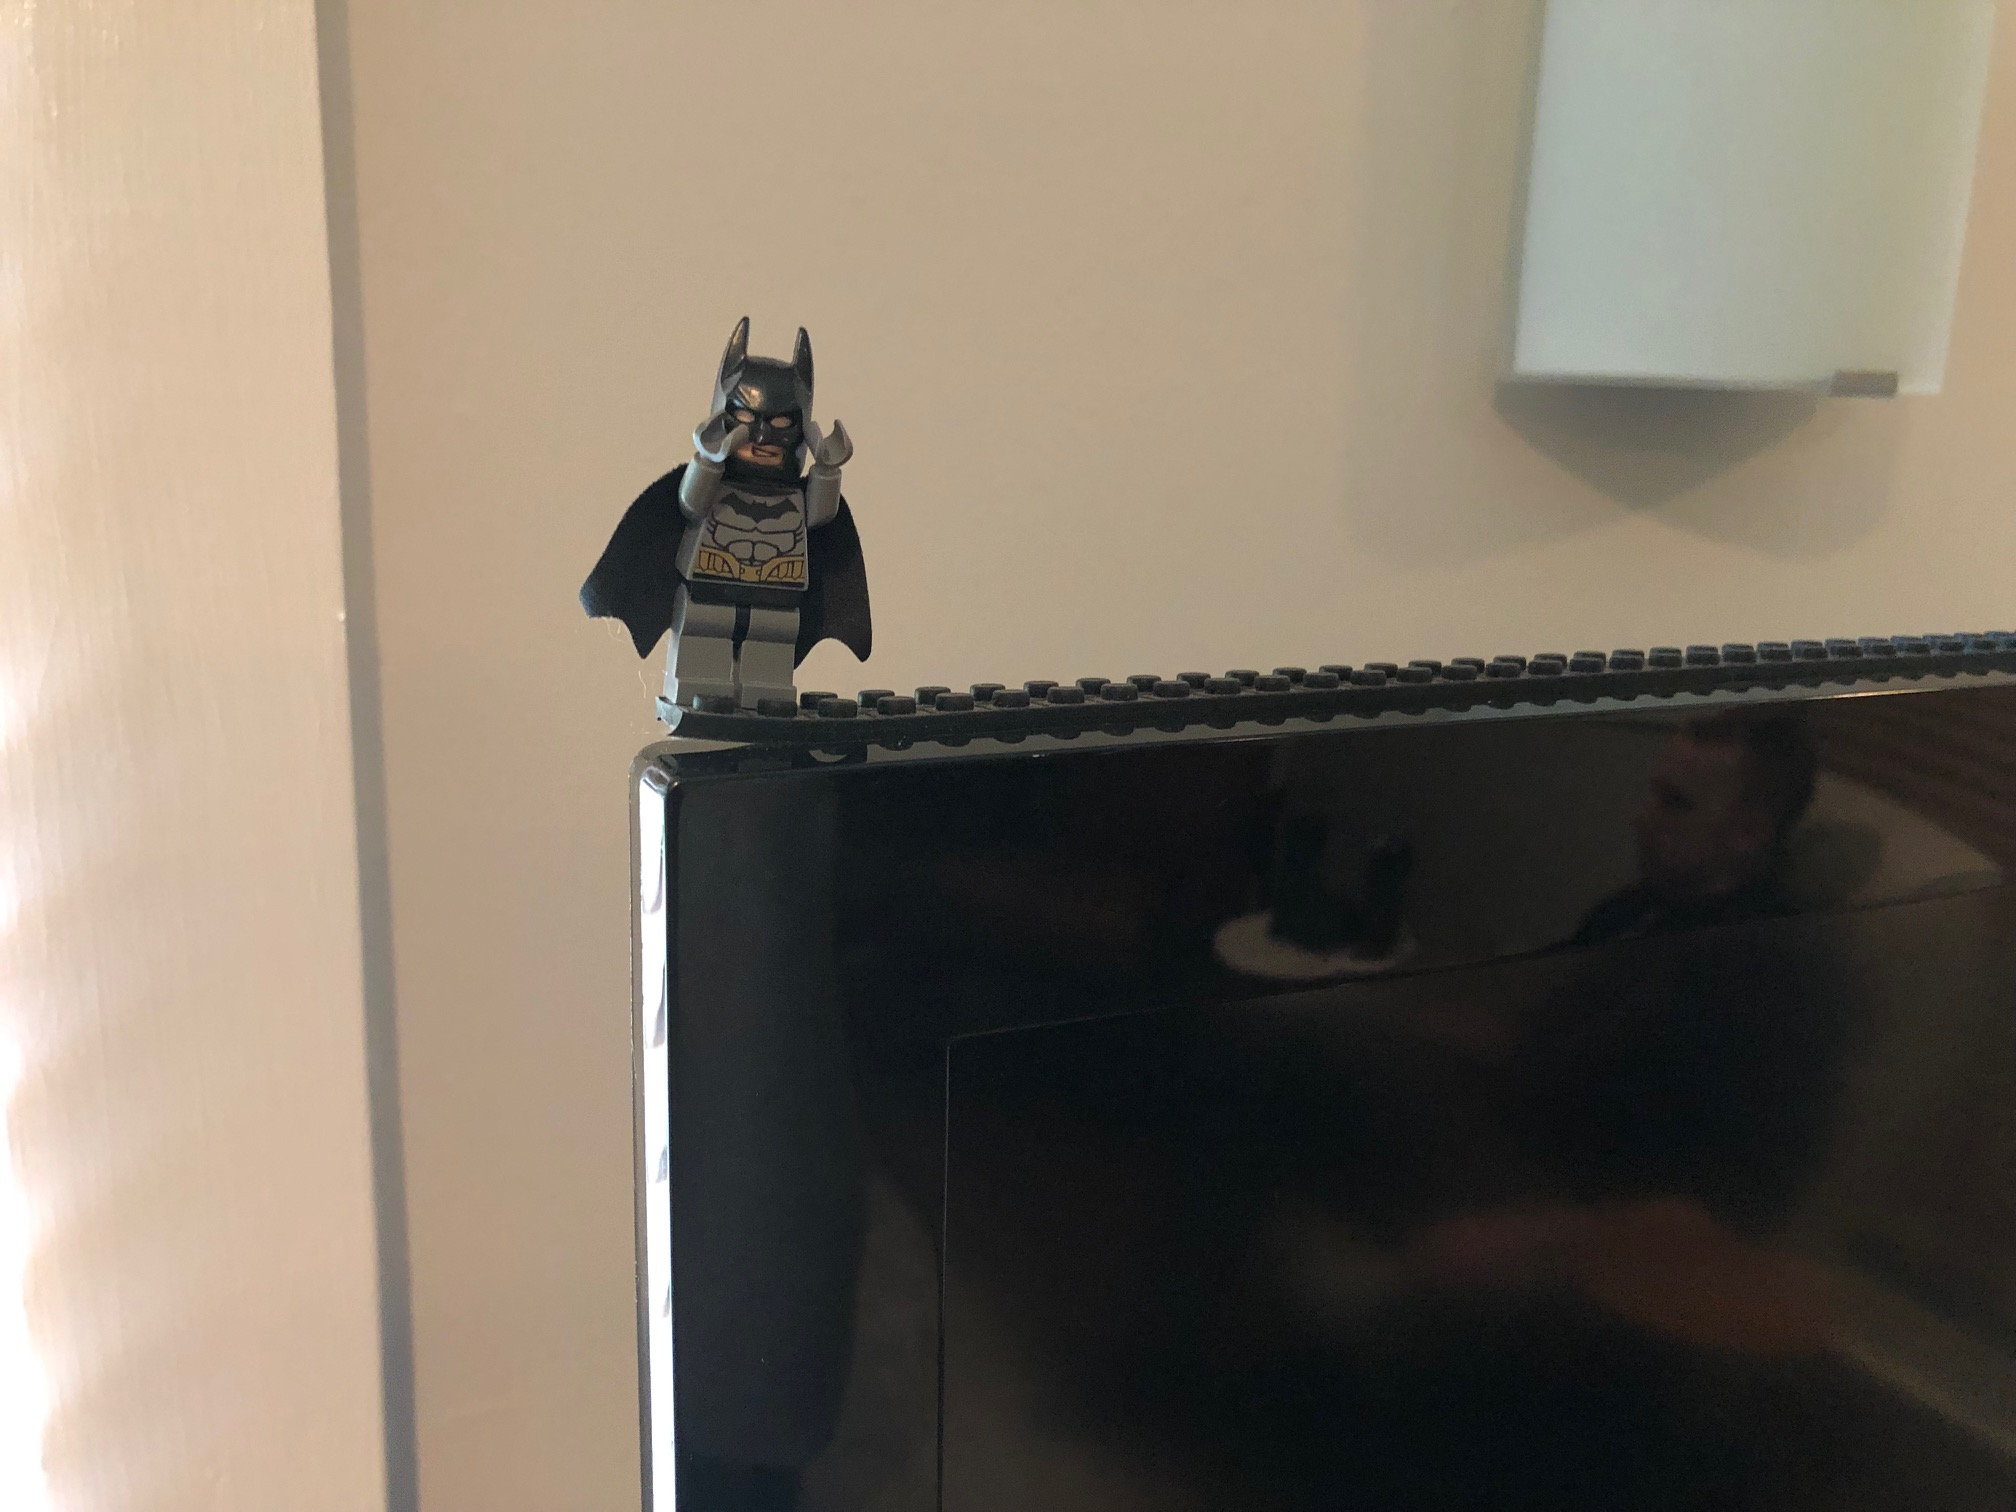 Batman on the TV